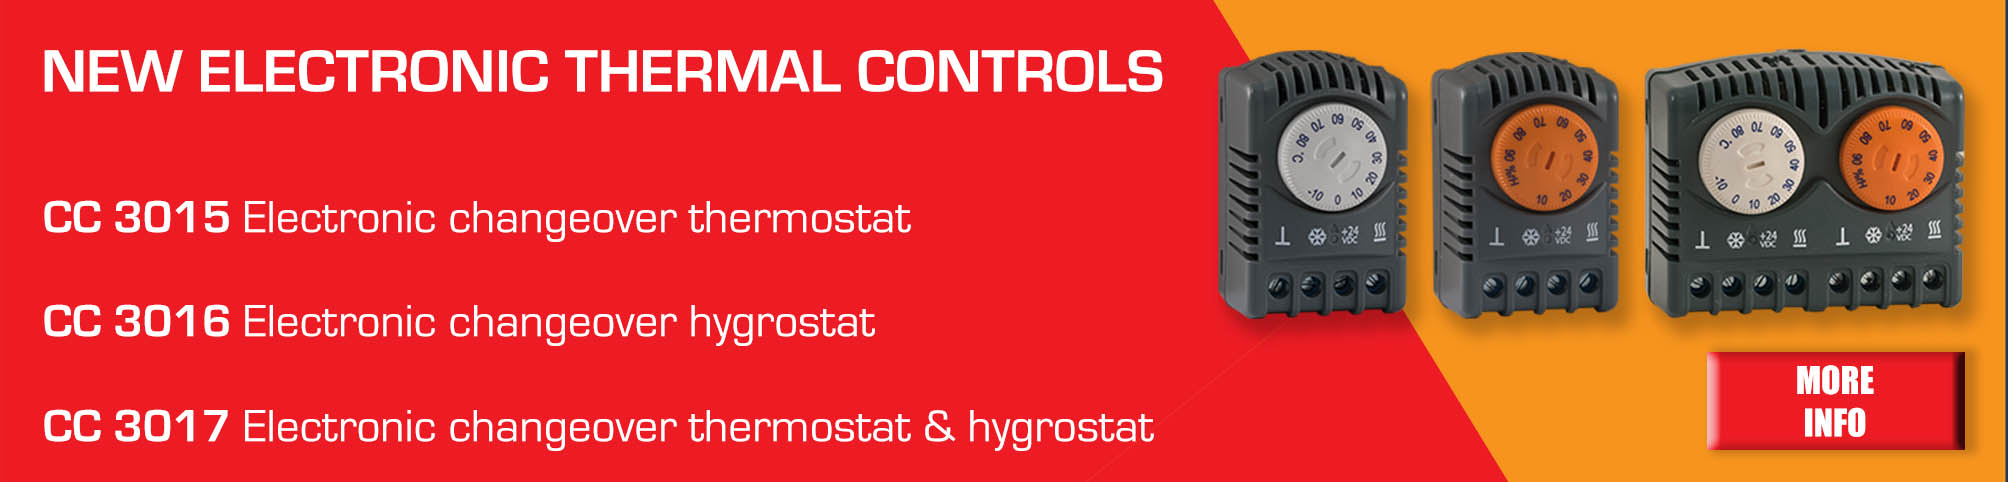 Thermal controls